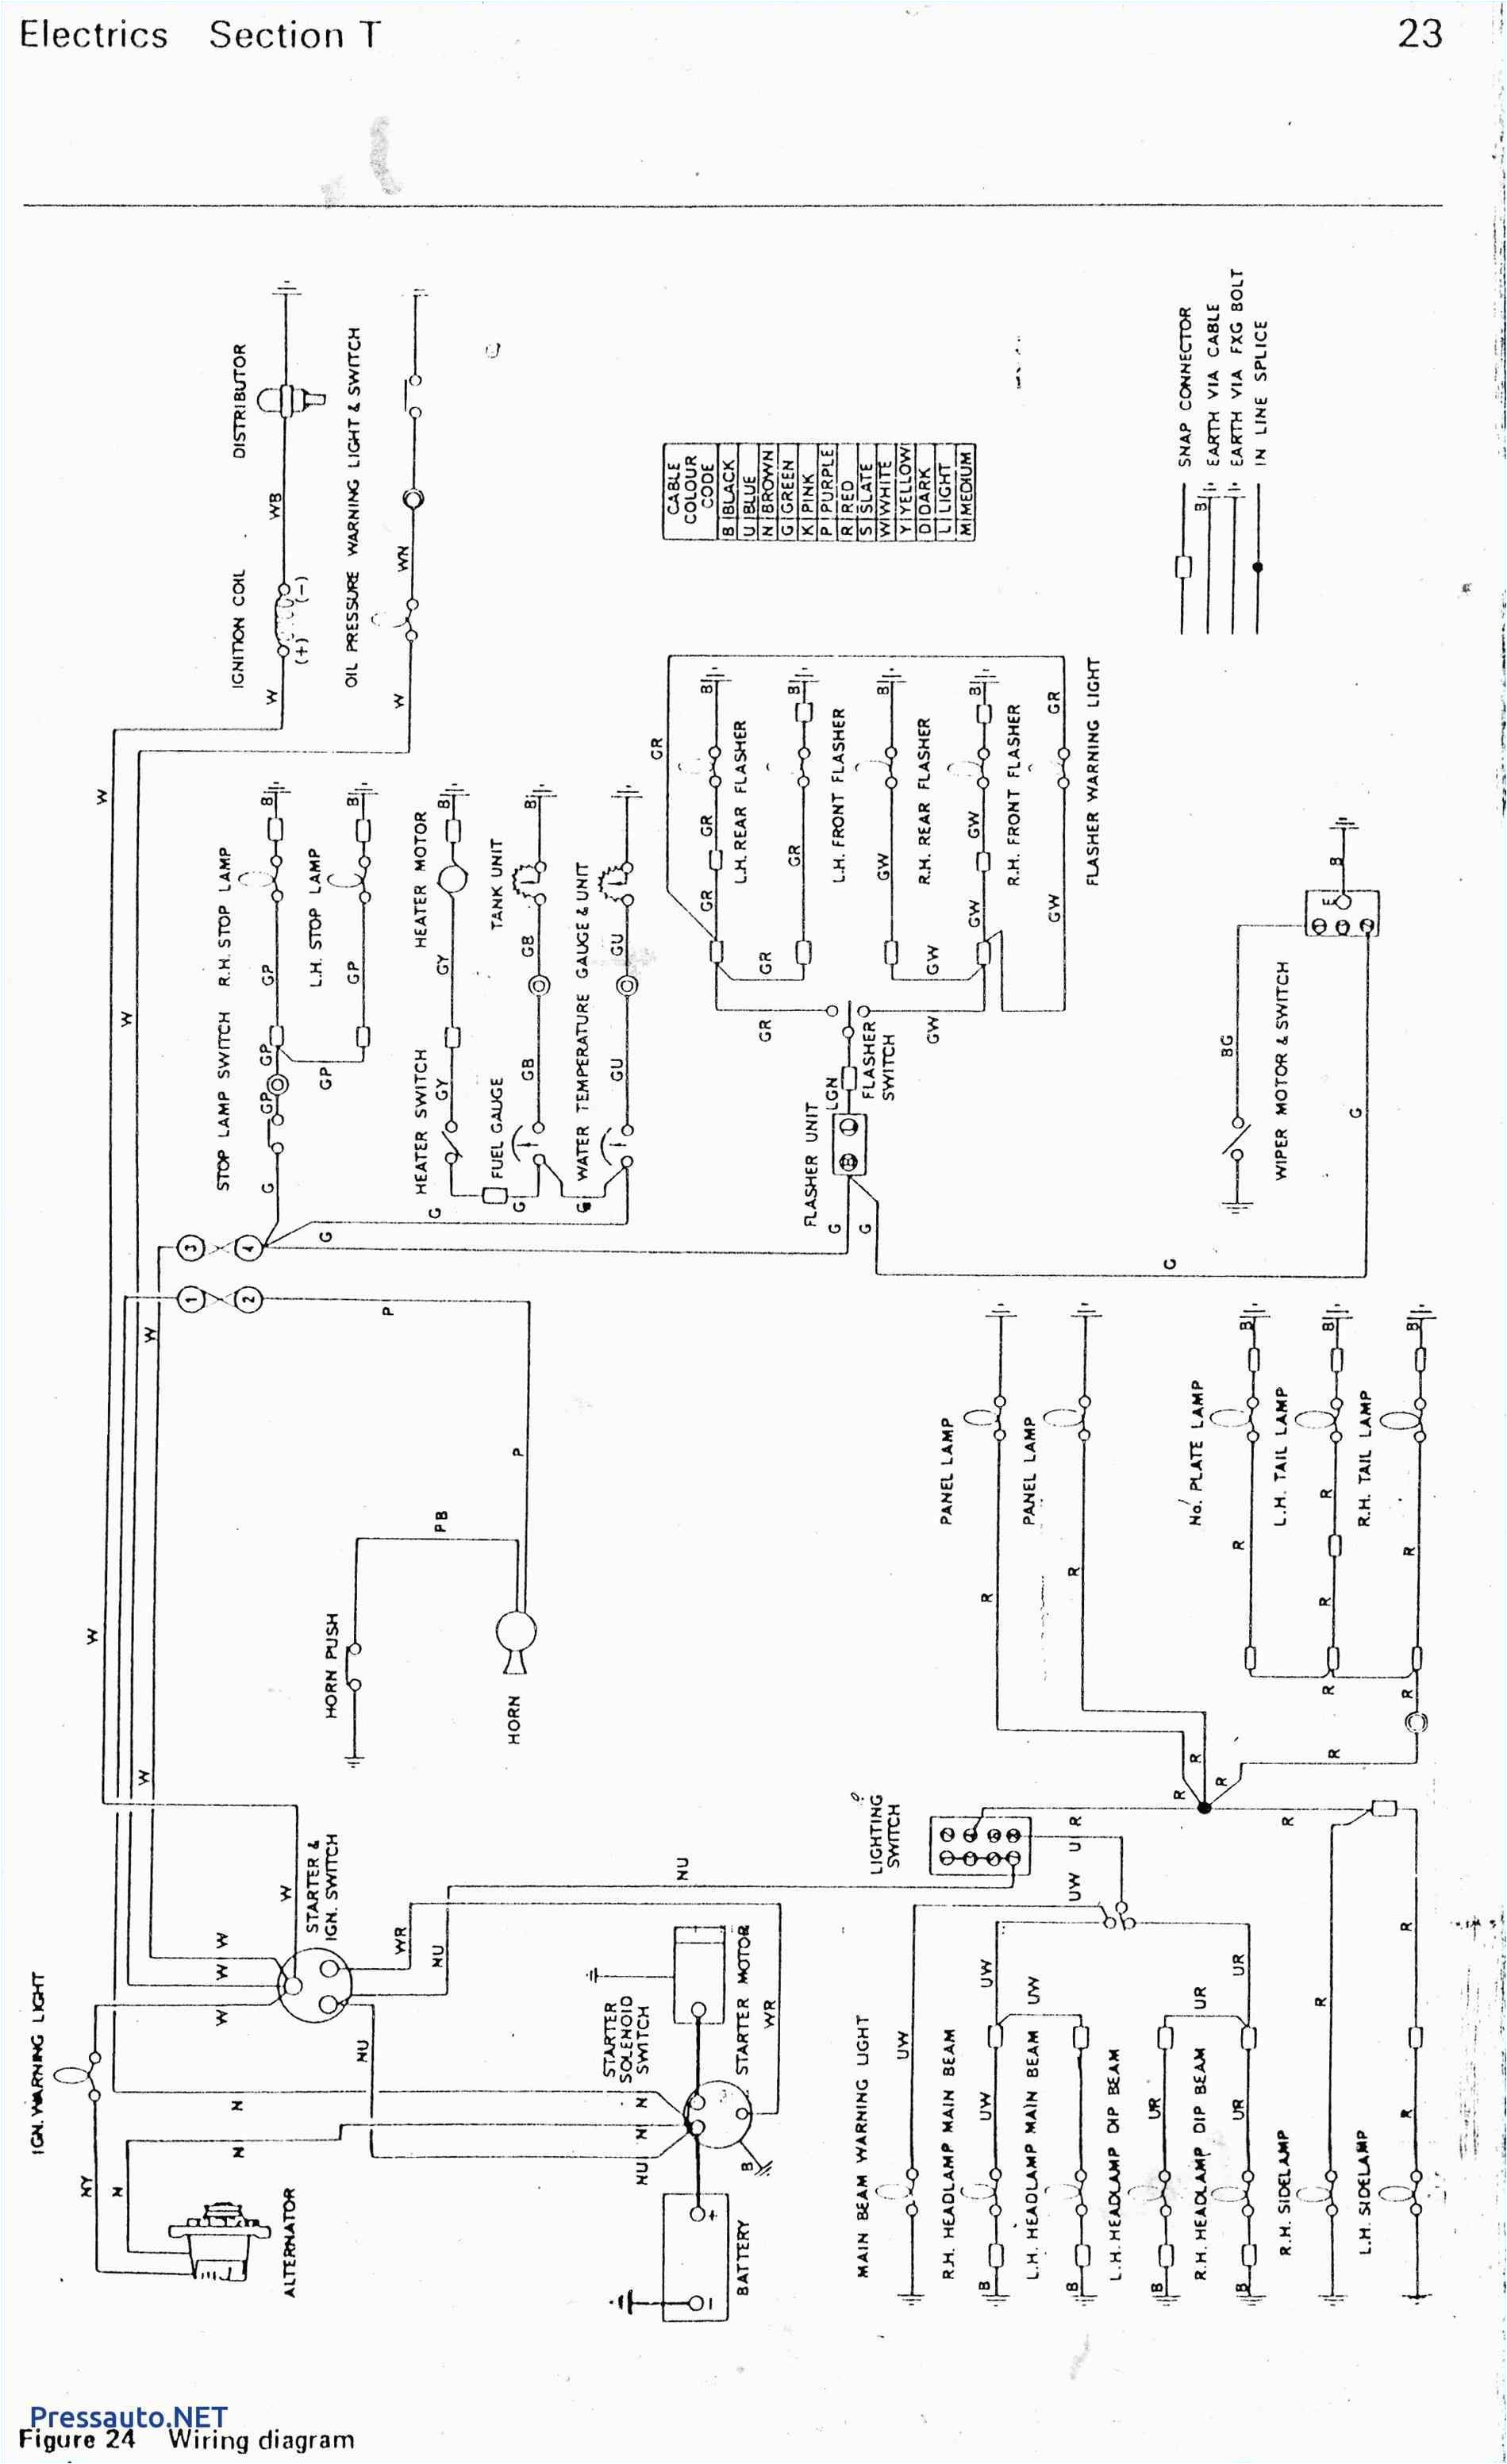 yale mpb040acn24c2748 wiring diagram wiring diagram show yale electric 24v wiring diagram wiring diagram rows yale